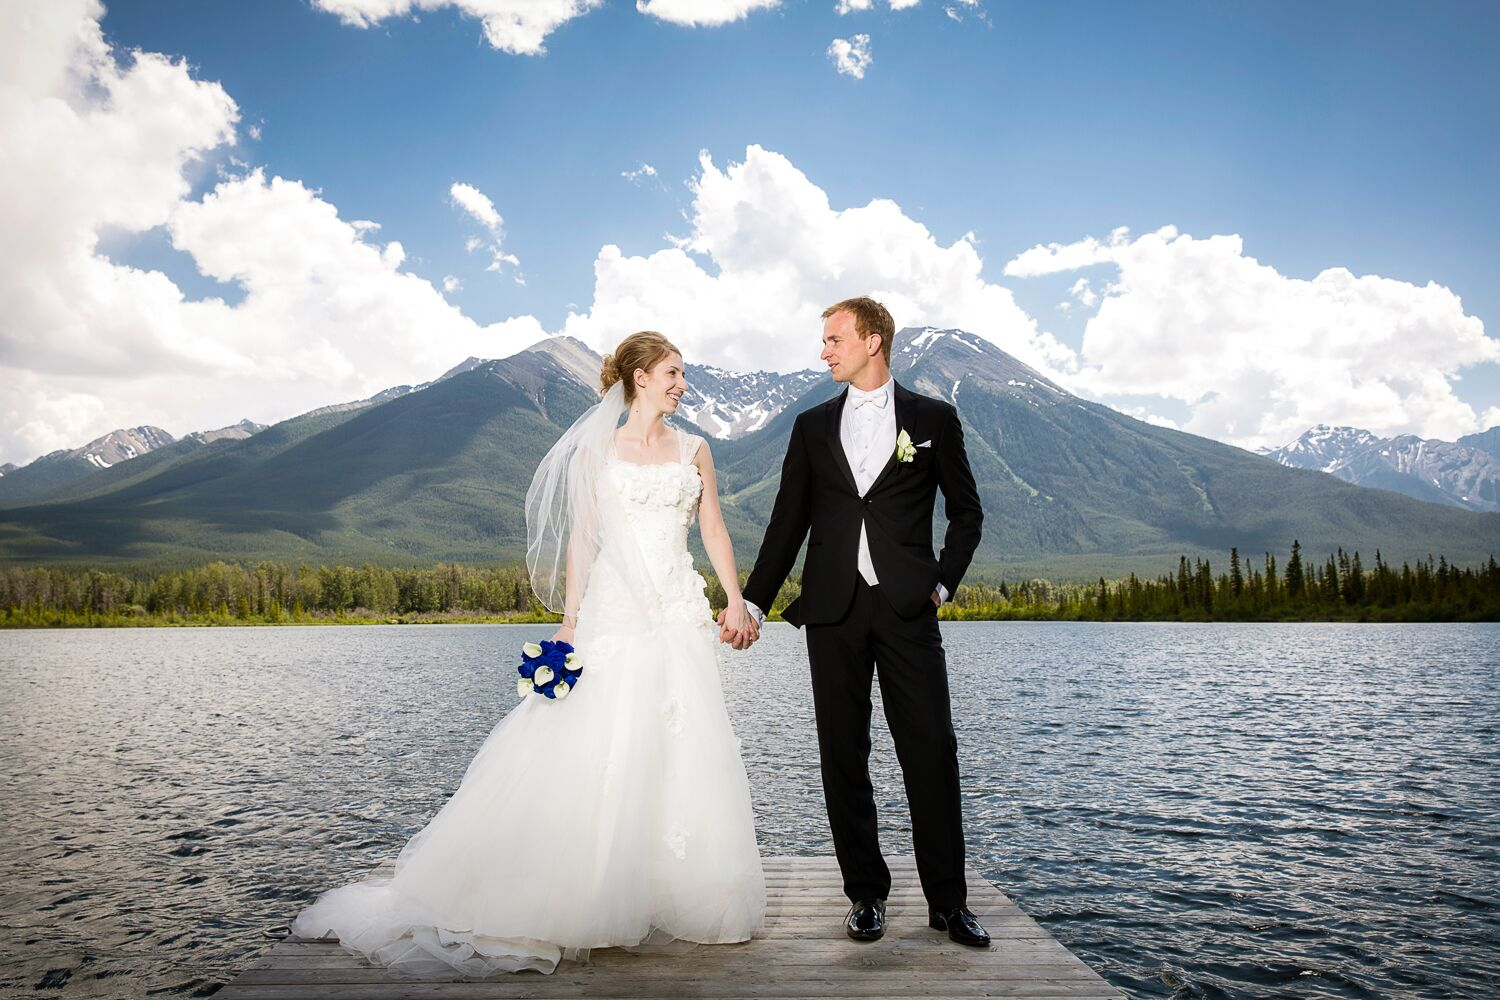 A Romantic Mountain Wedding At Fairmont Banff Springs In